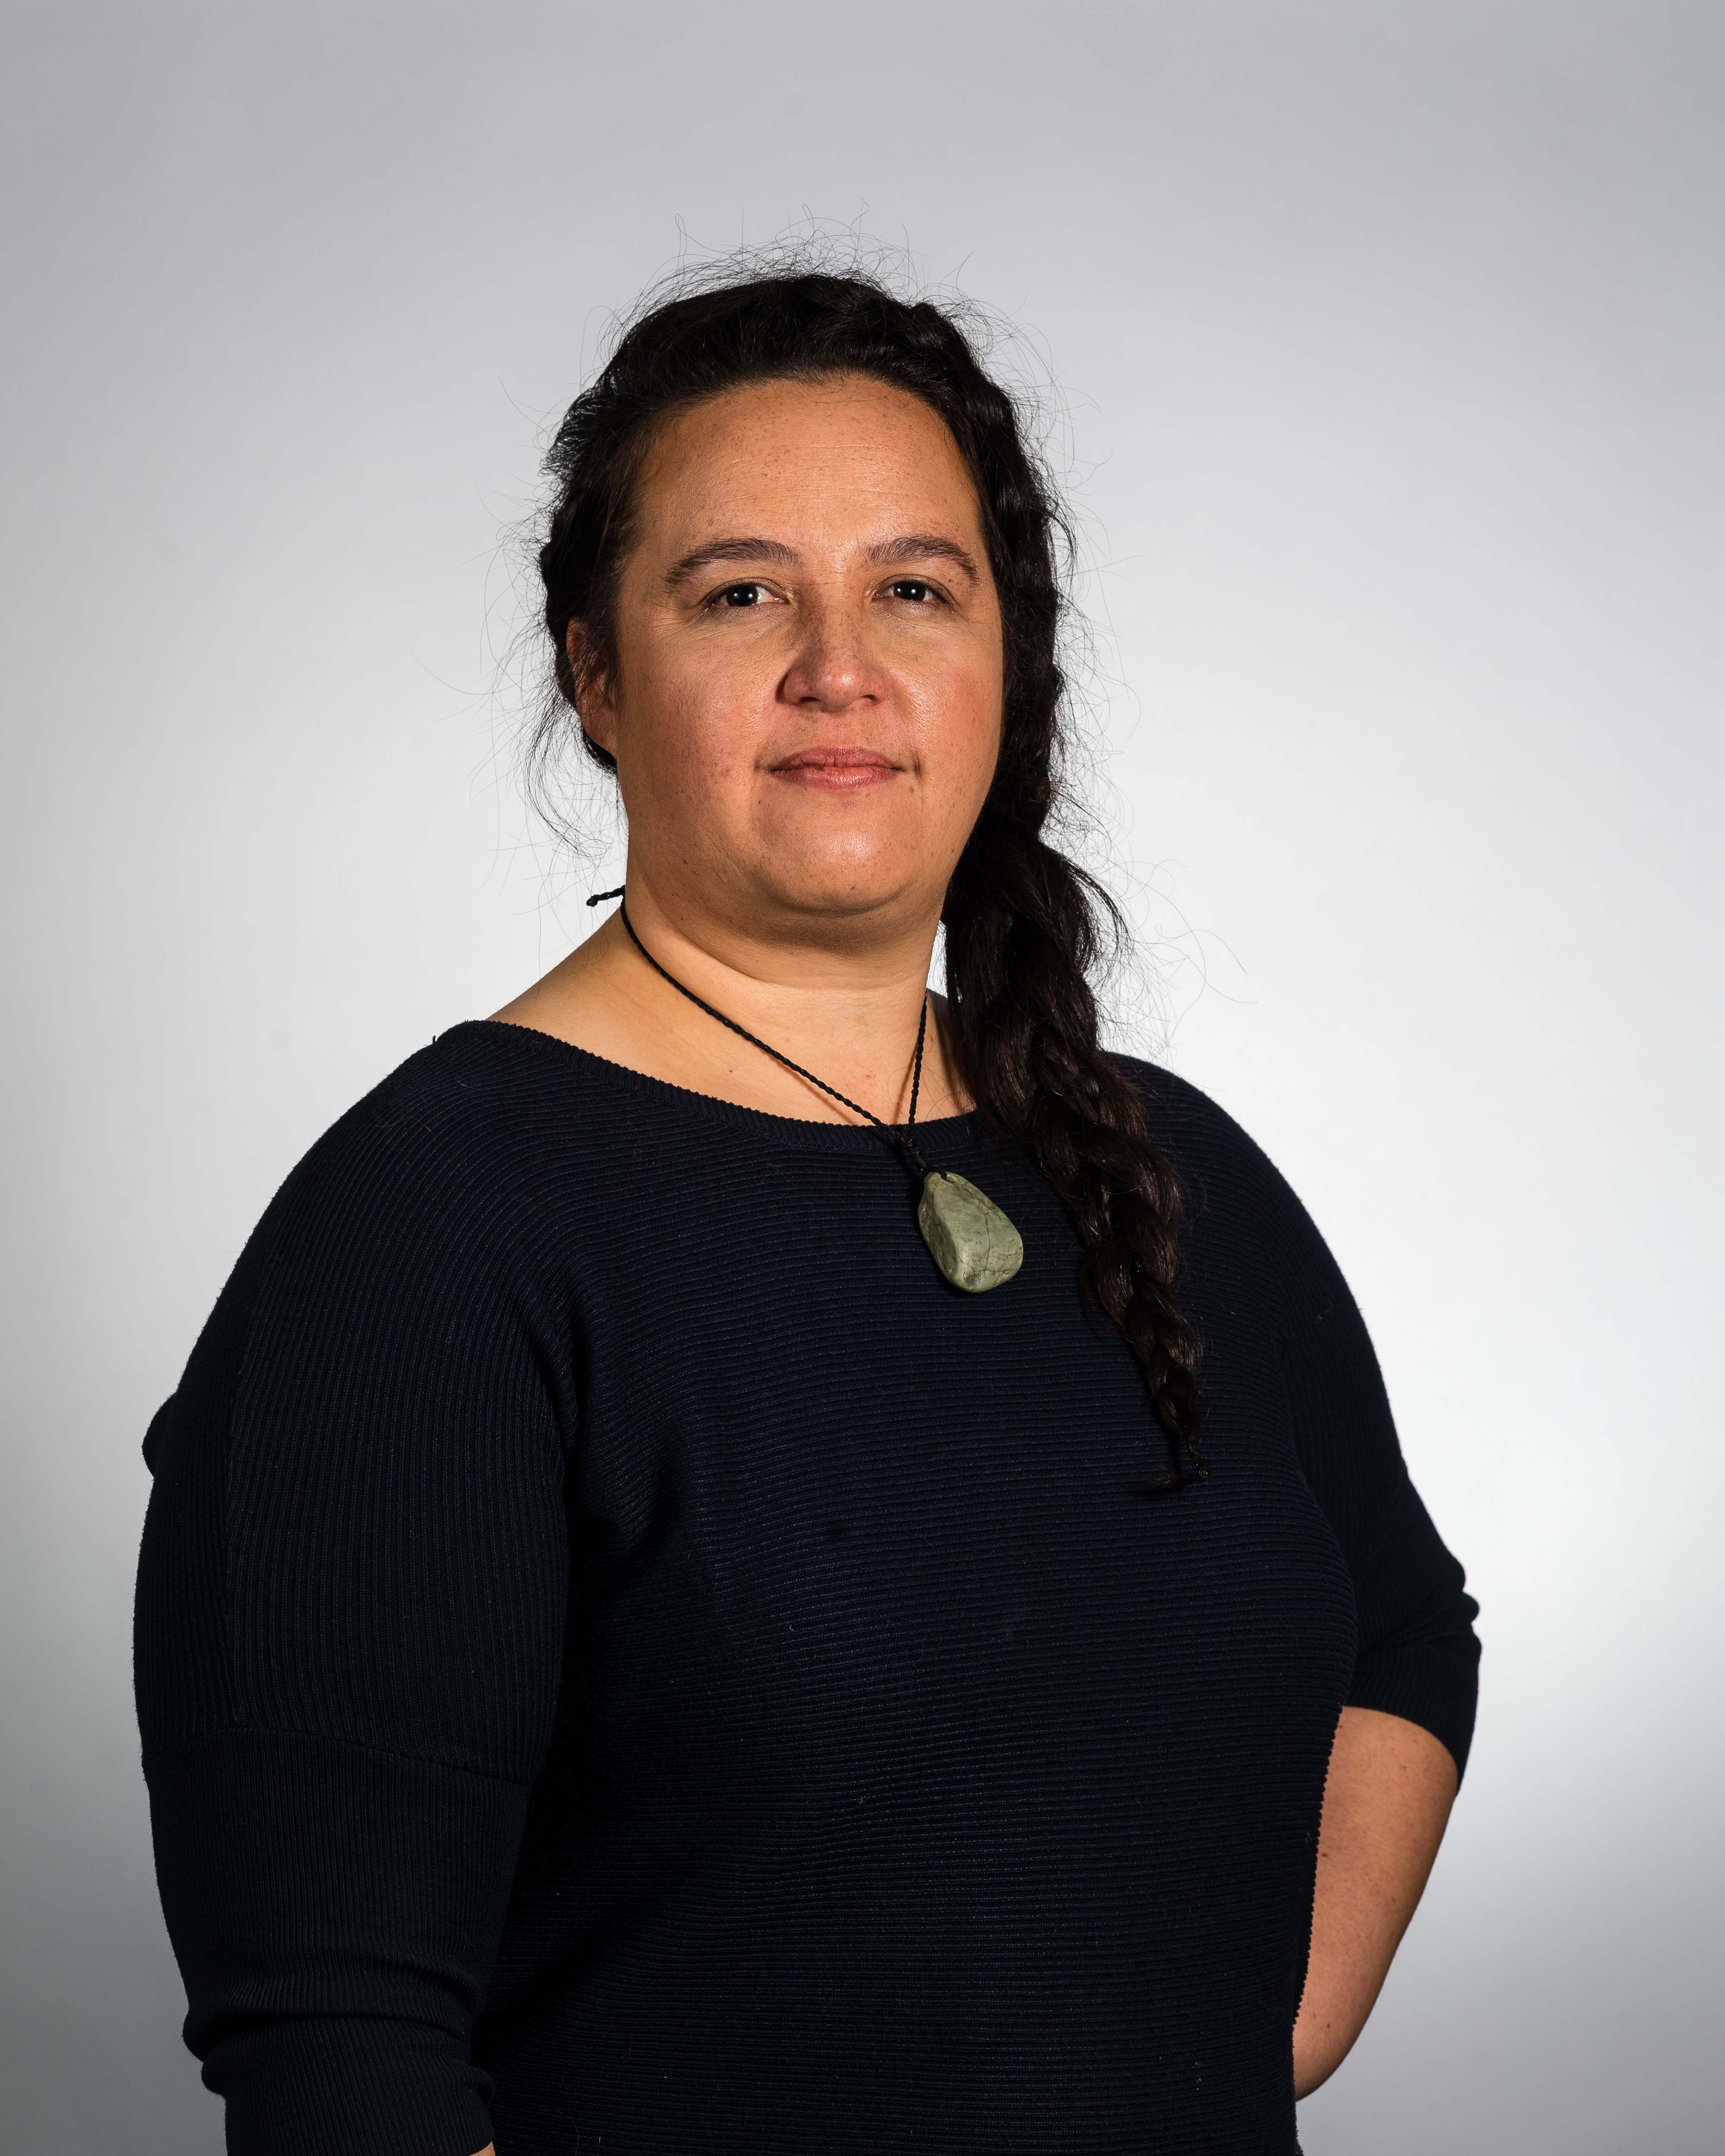 Petone Settlers Museum Whatatu Wahine - Women Here and Now July 02, 2018